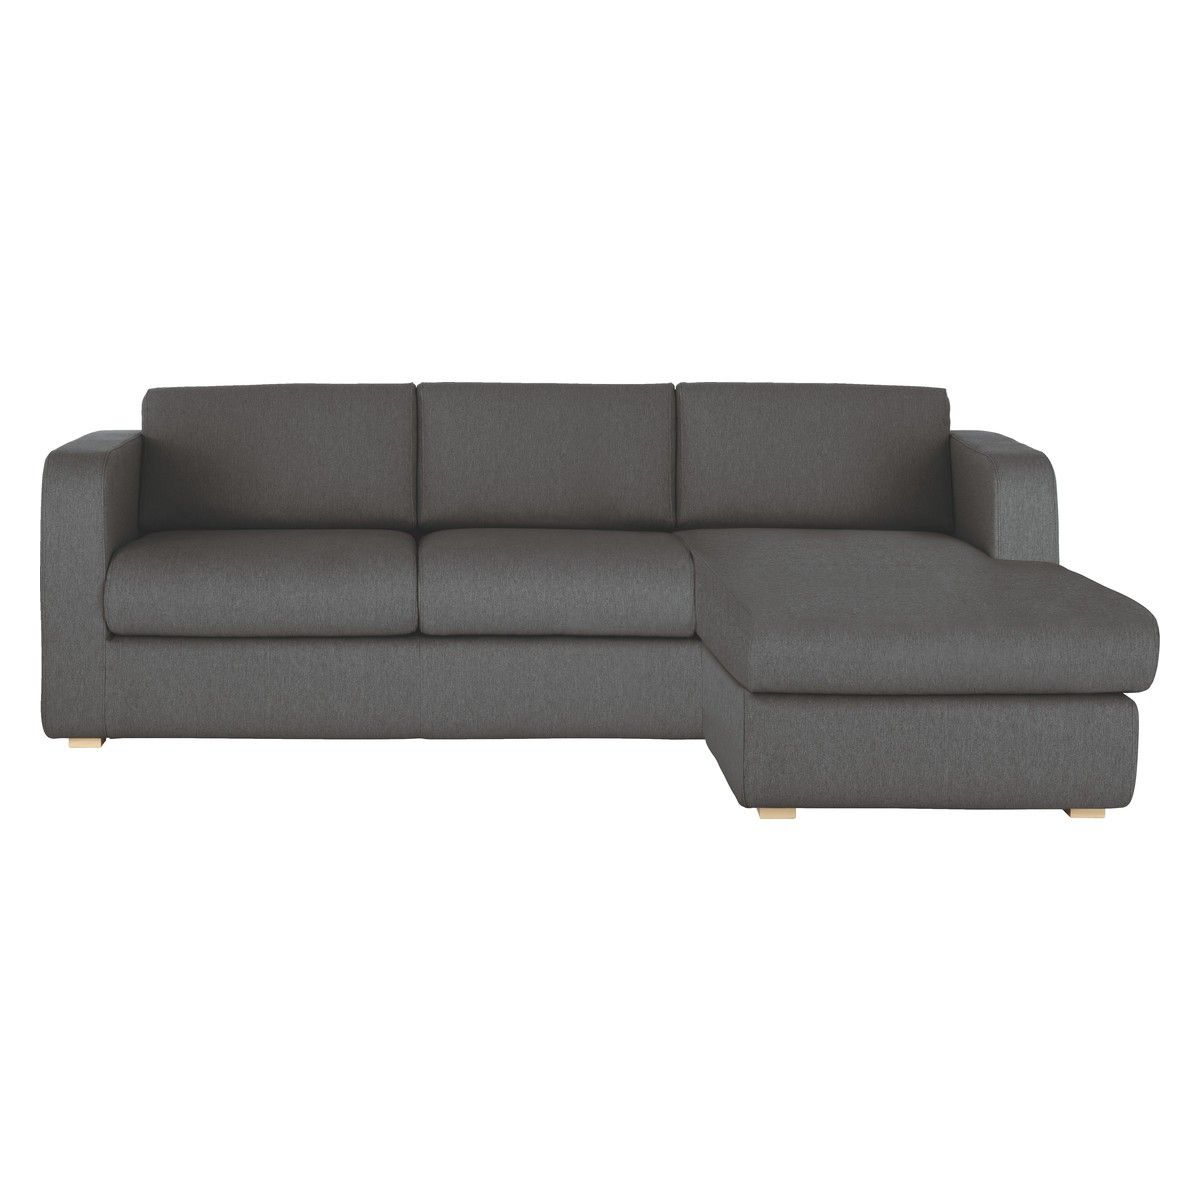 intended bed sofa stylish lounge chaise ideas ikea with pc leather for classy